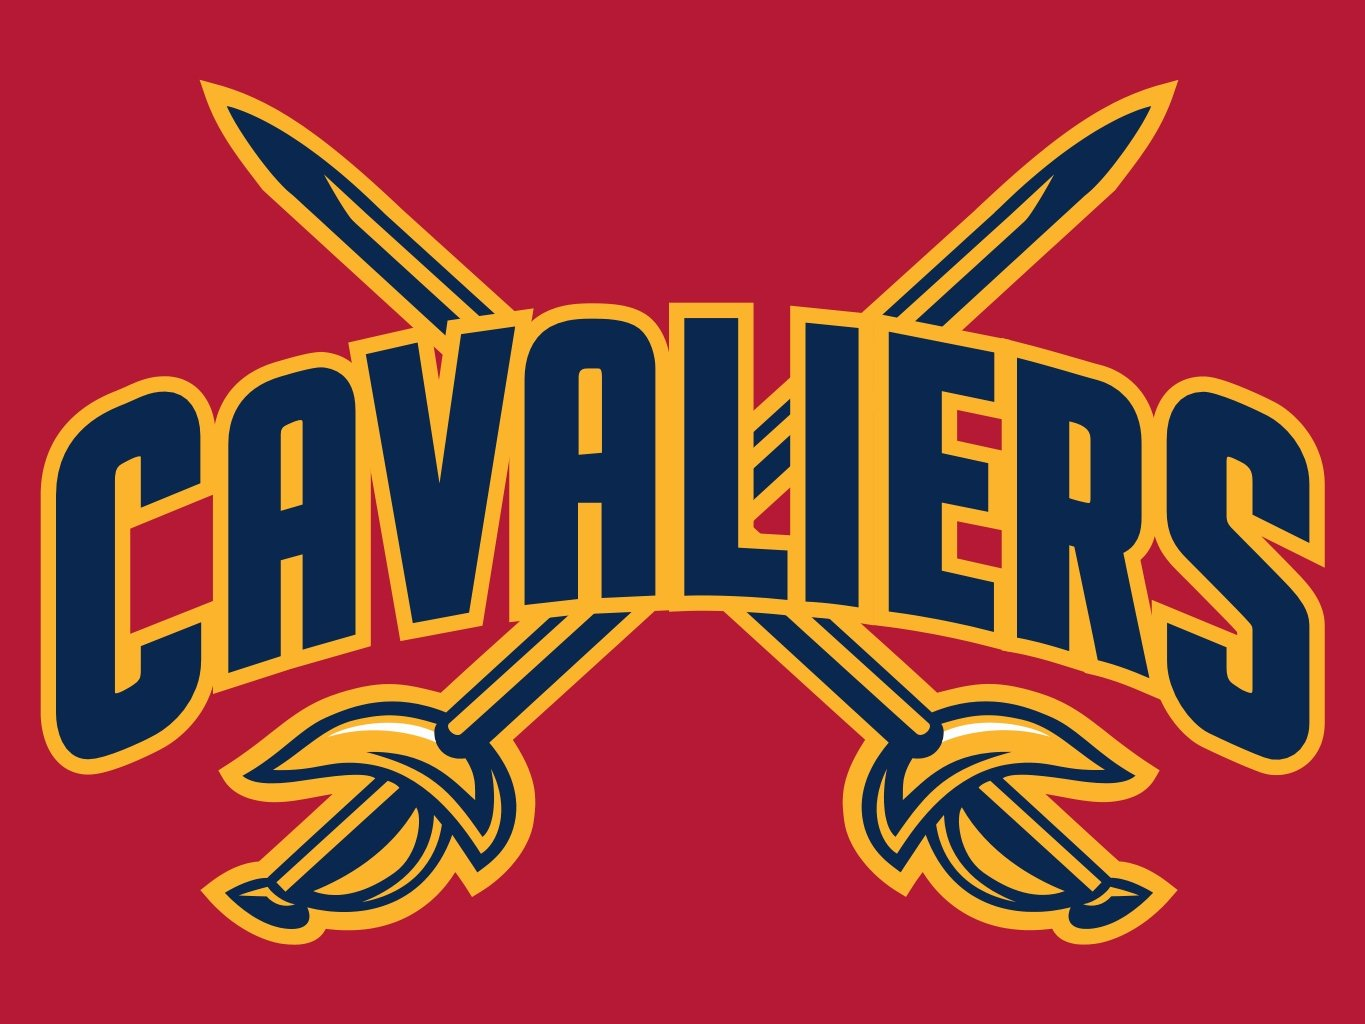 Cleveland cavaliers wallpaper and screensavers - Cleveland cavaliers wallpaper ...